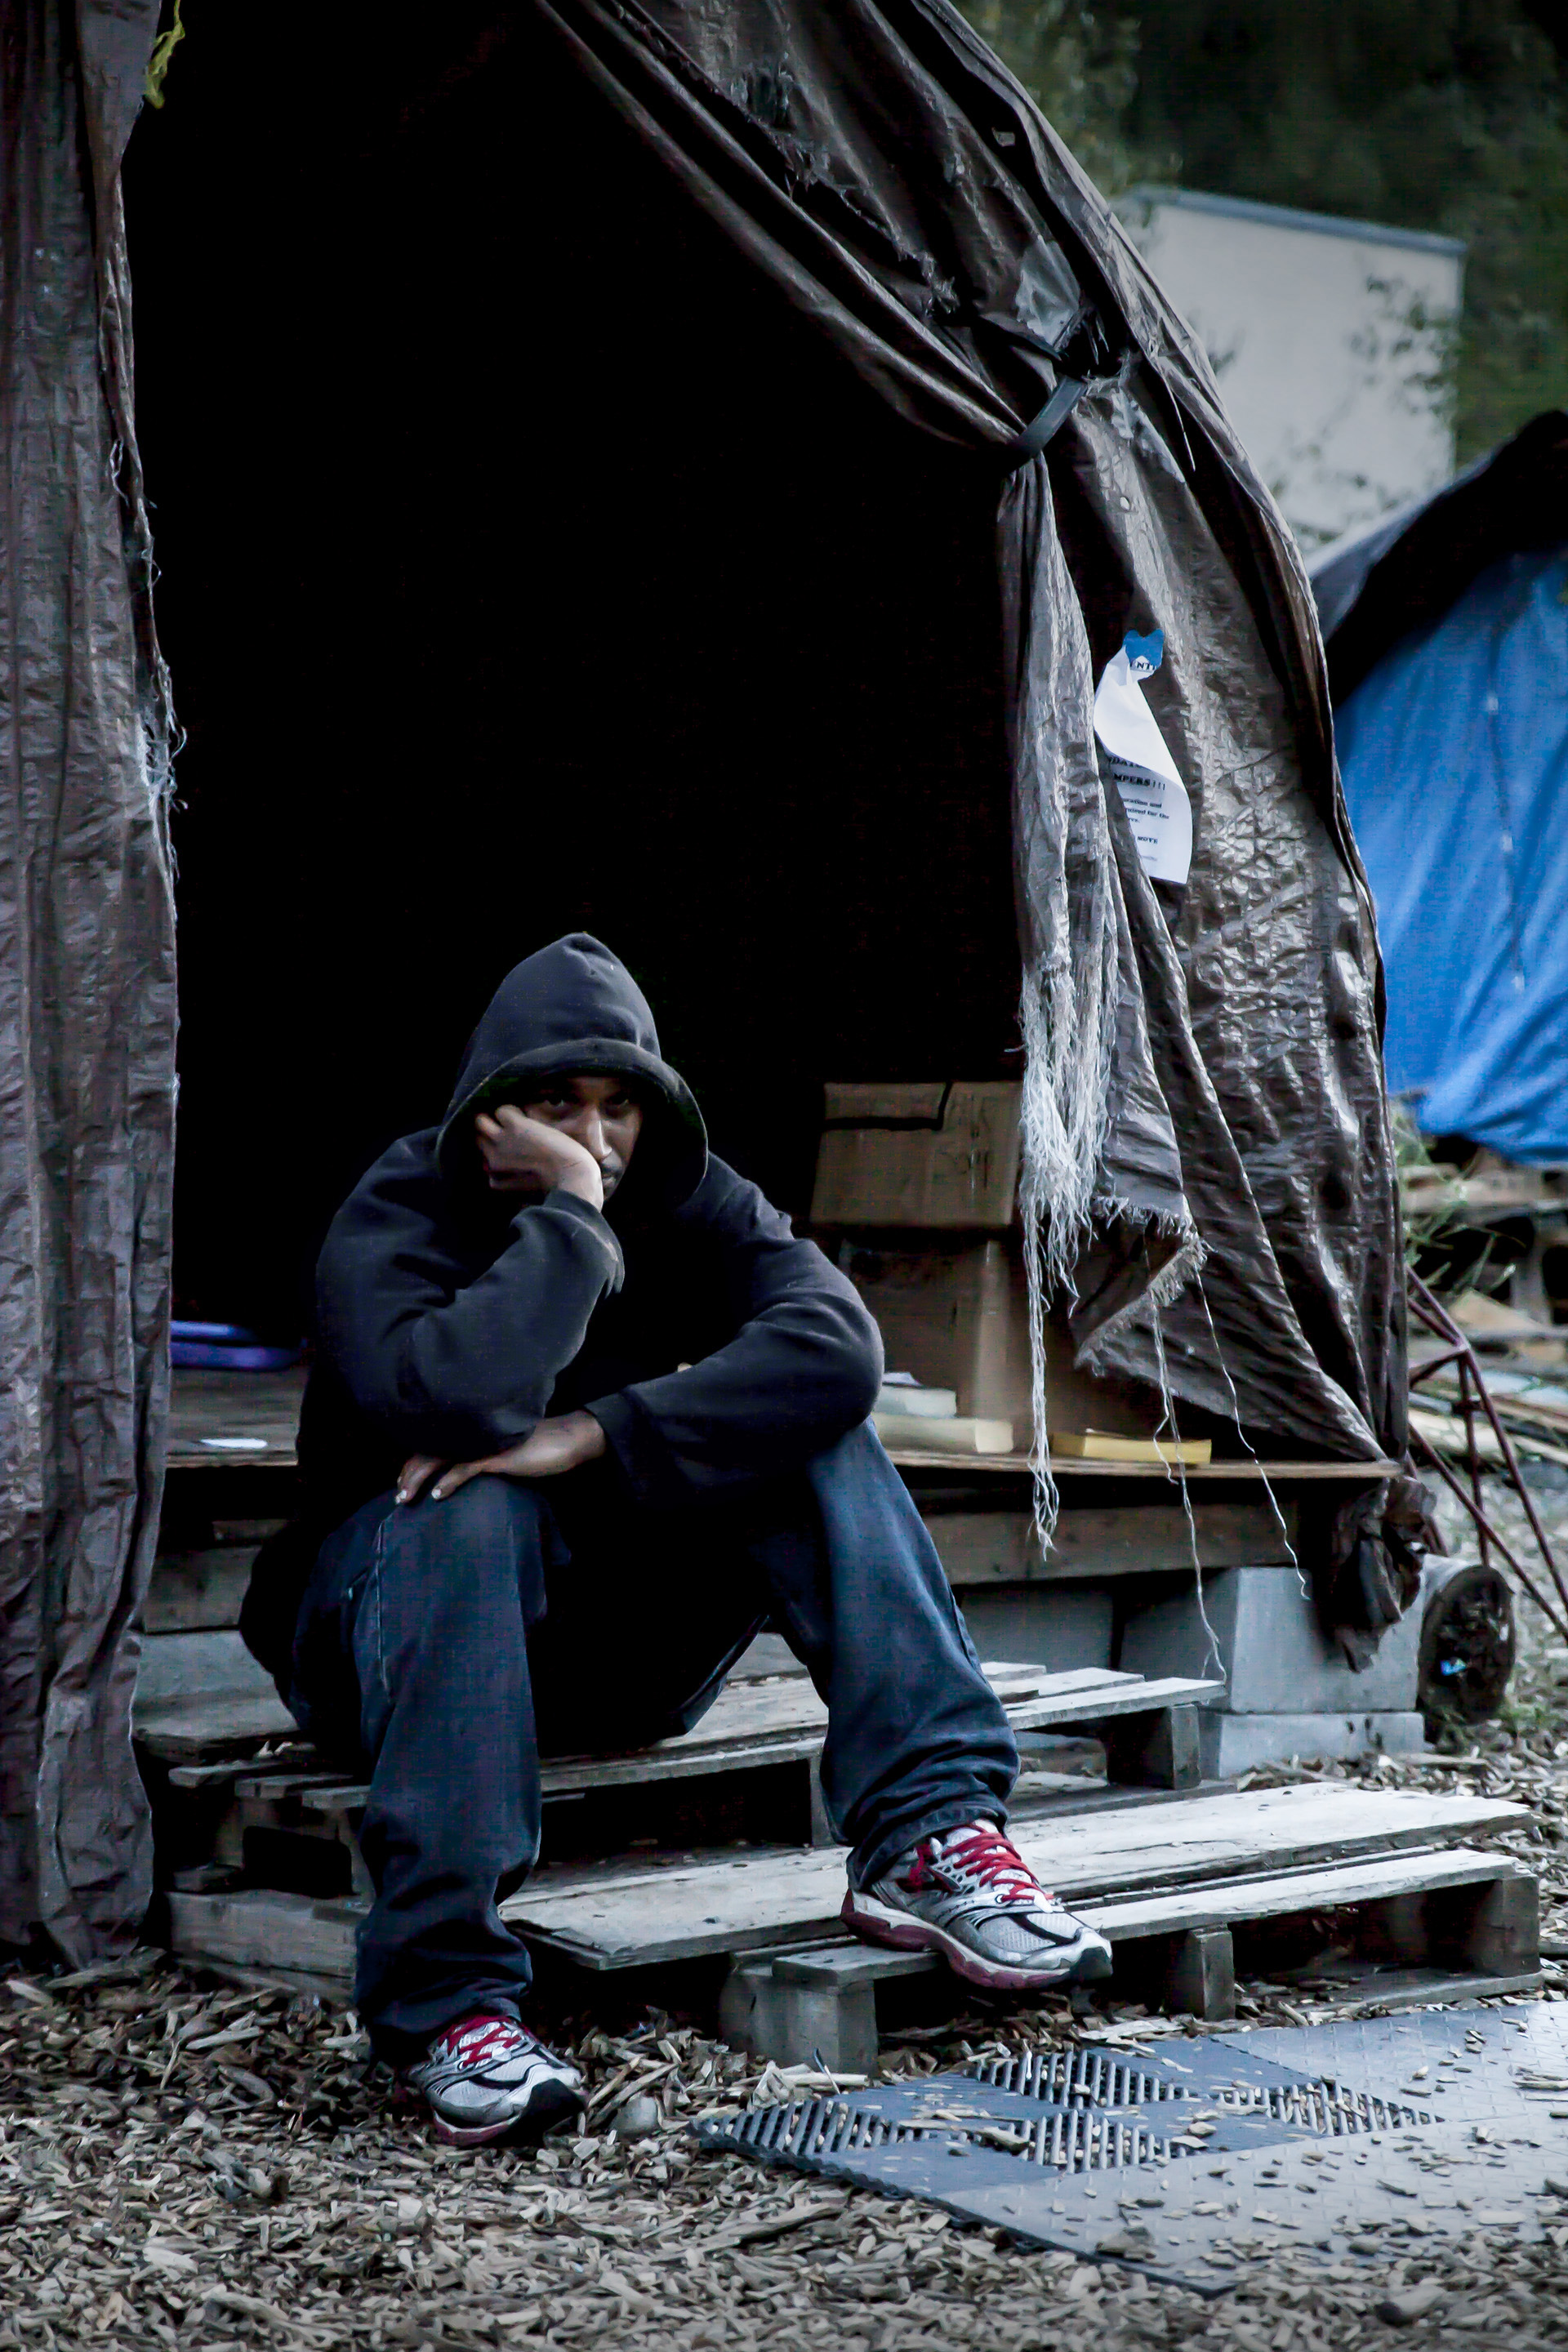 """31 August, 2013 - """"Nickelsville"""", Seattle   Nickelsville resident by the main supply tent where donated and shared food, water and other provisions are stored, on the eve of the City of Seattle's deadline for all residents to abandon the camp site."""